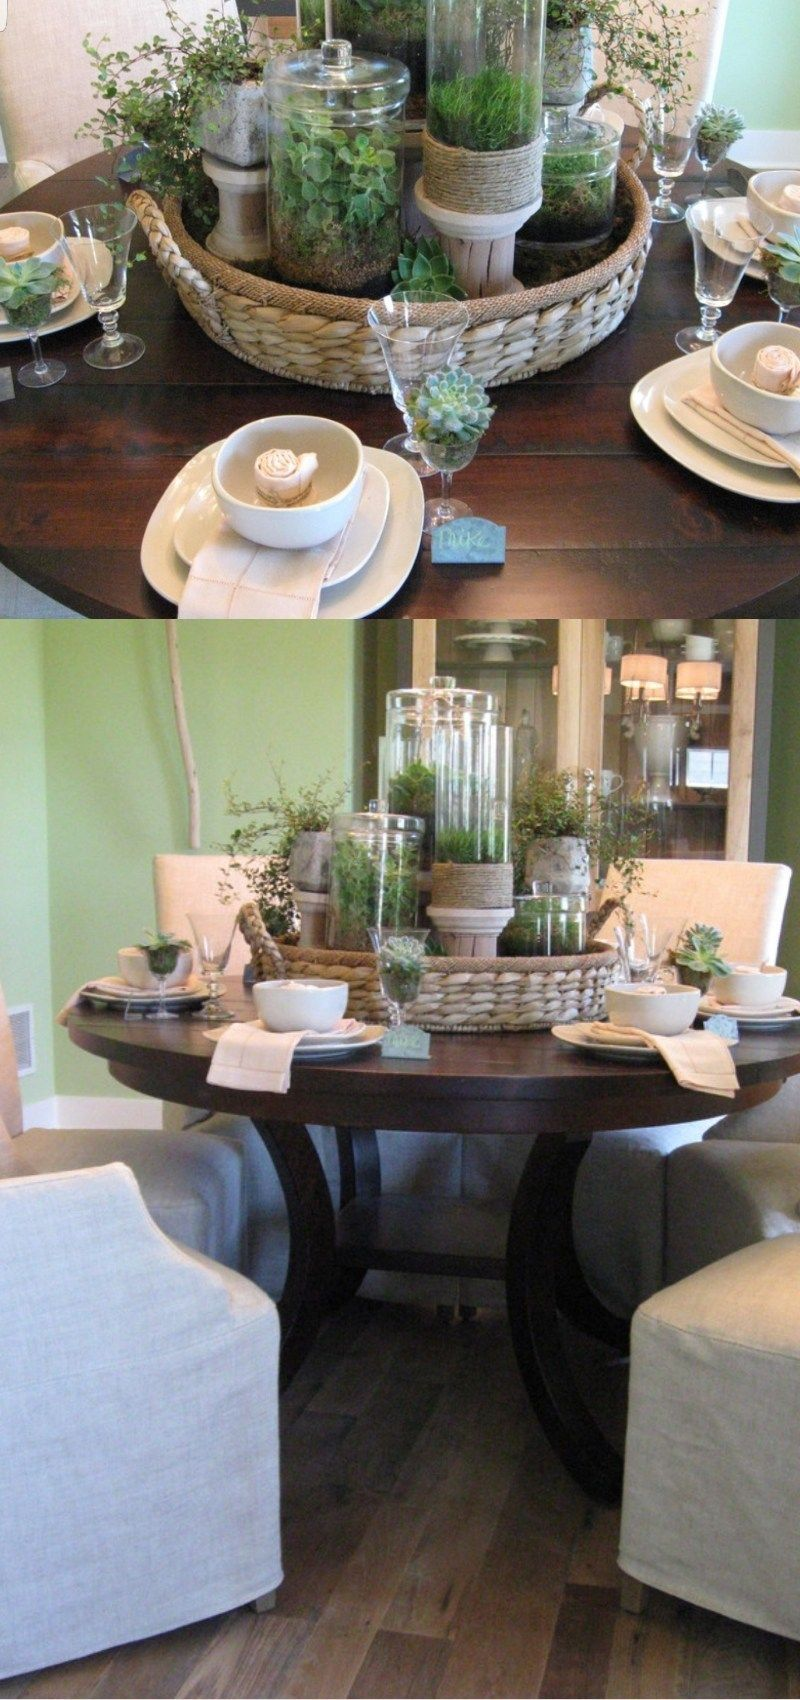 Simple Table Setting Ideas Dining Table Centerpiece Dining Table Decor Dining Table Decor Modern